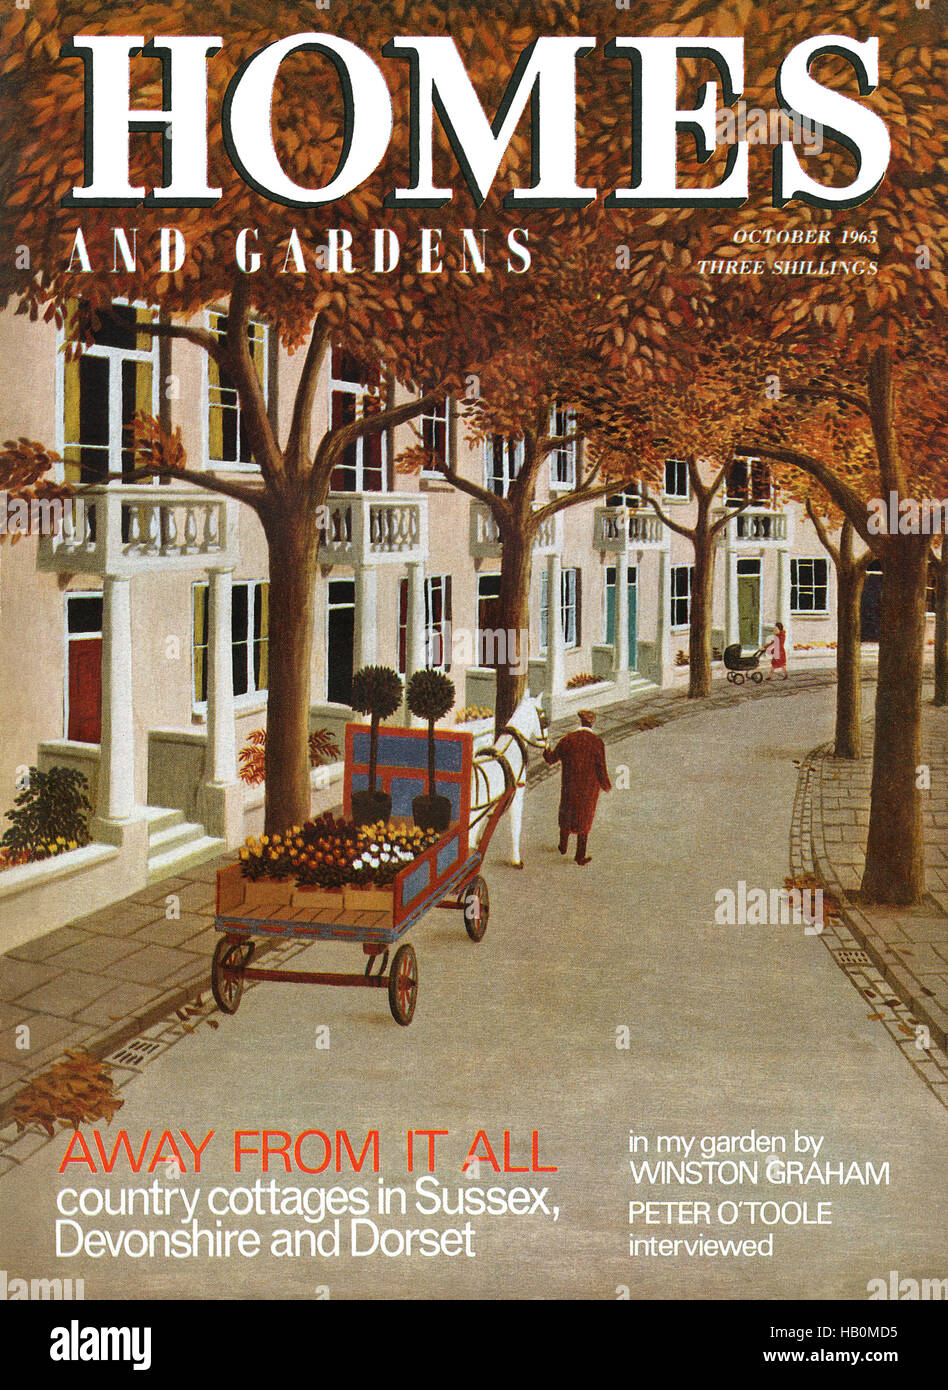 Front cover of Homes And Gardens magazine for October 1965 with an illustration by Bernard Carter - Stock Image